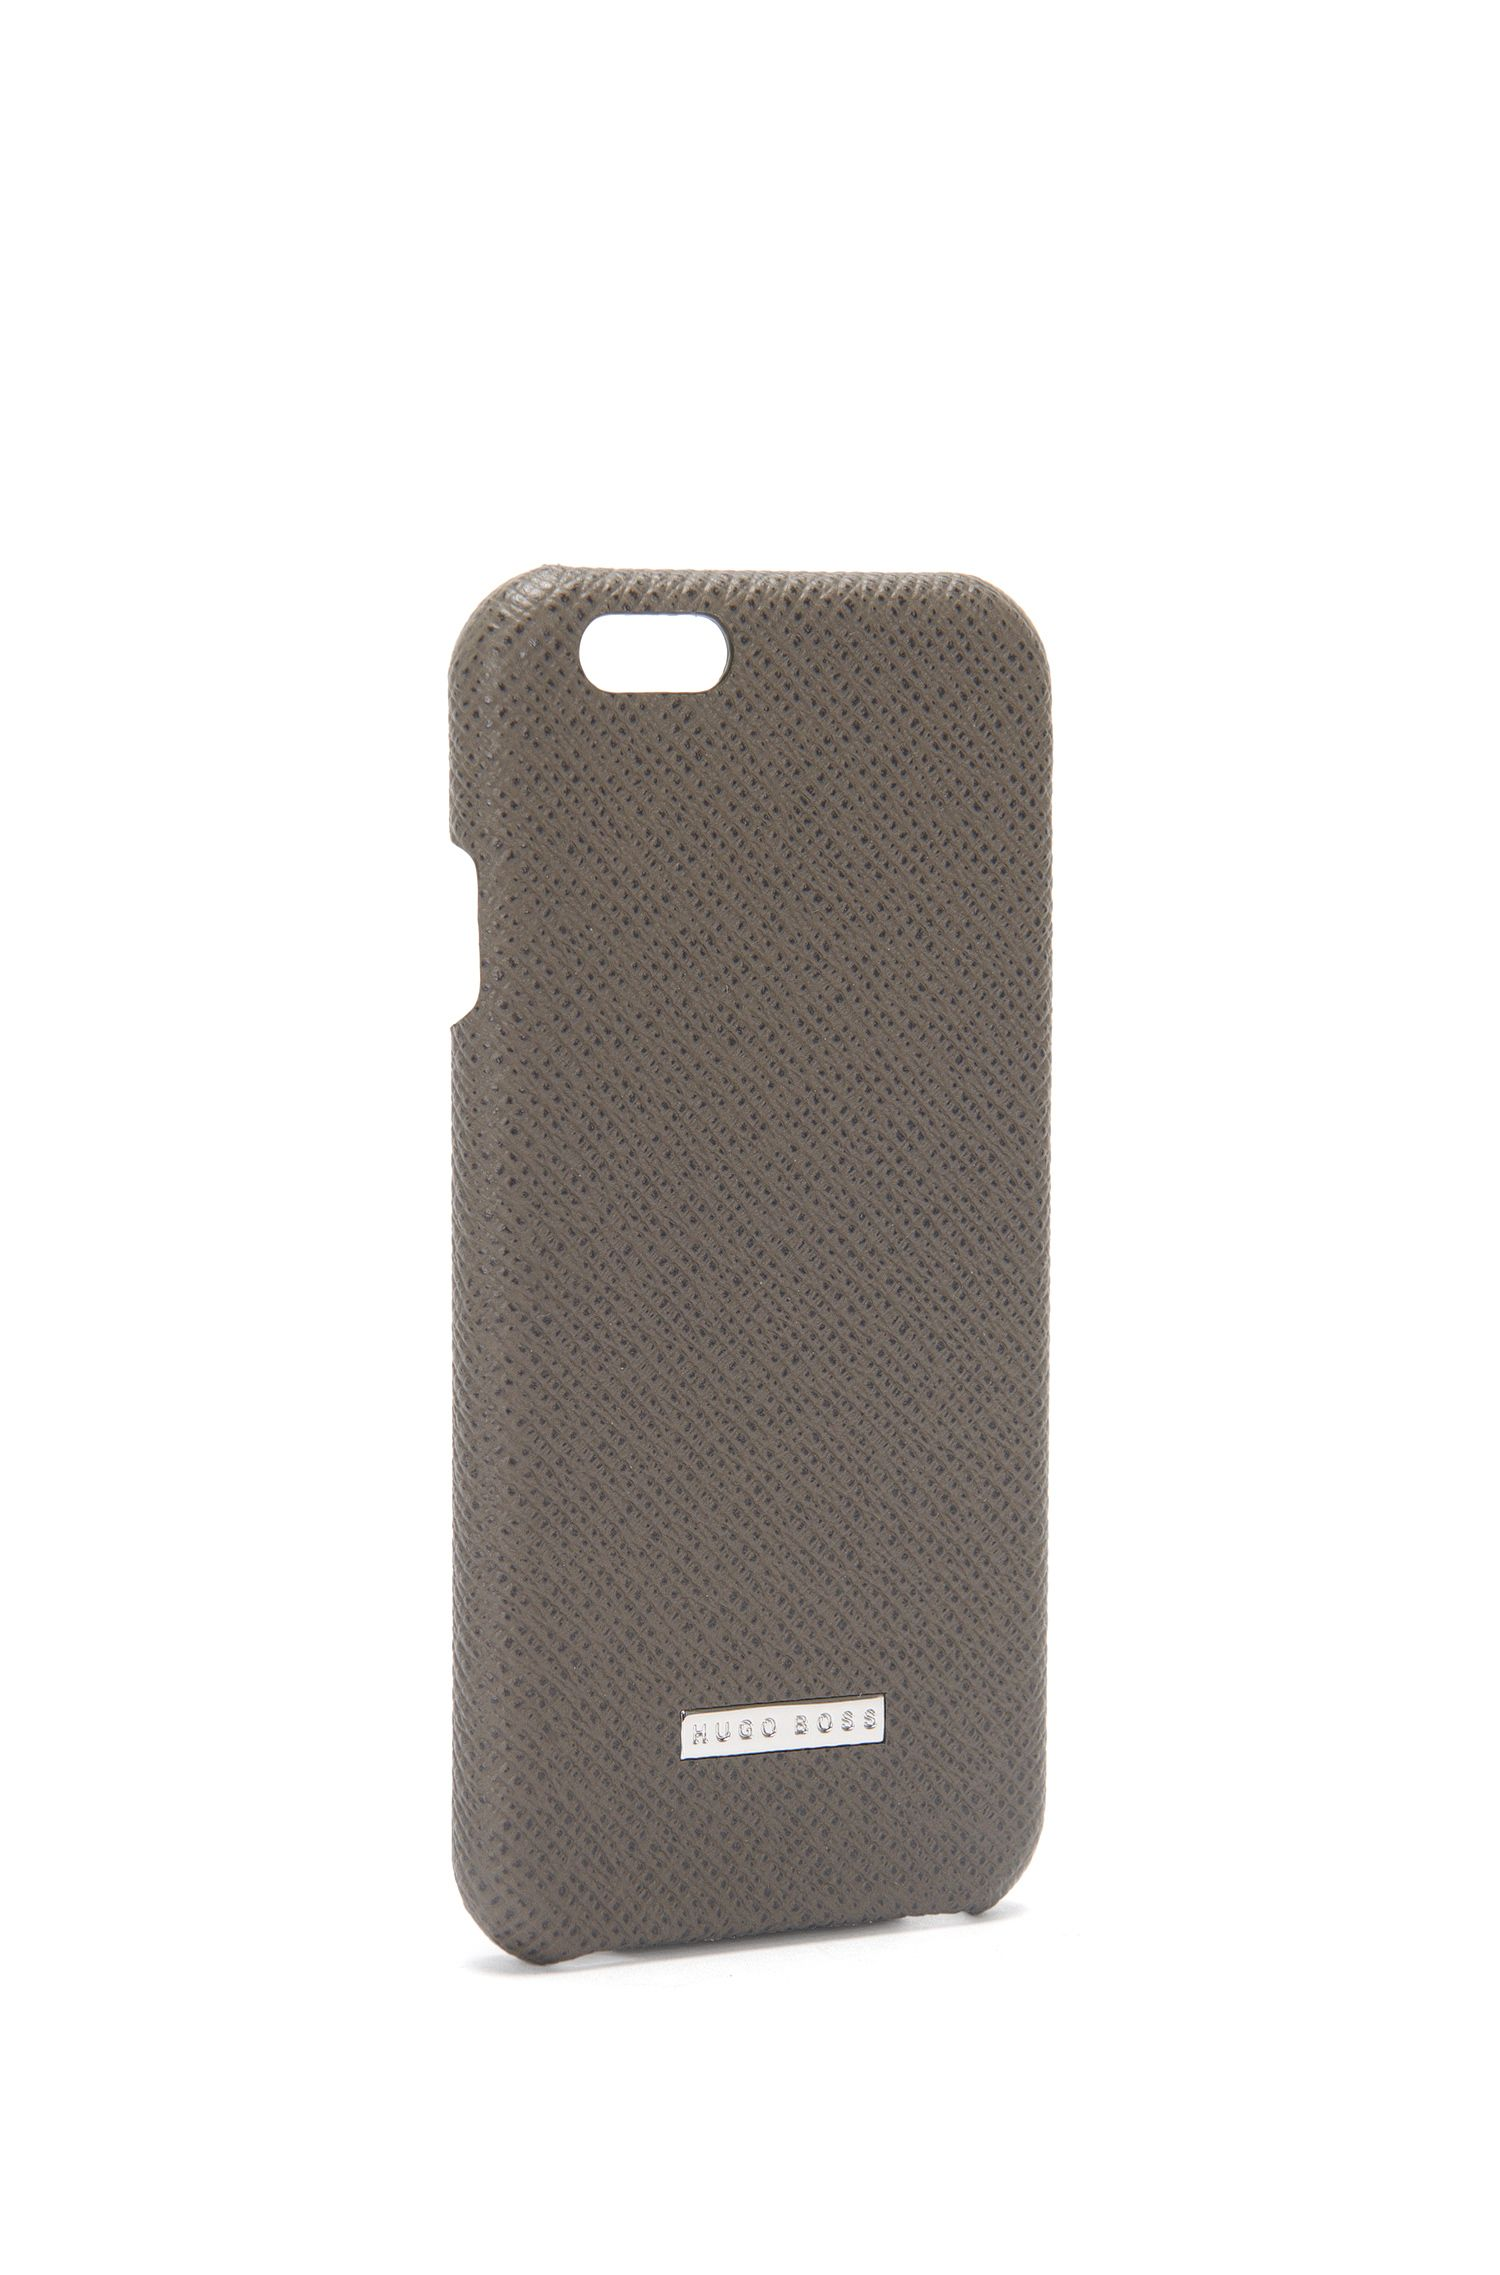 Coque de smartphone de la collection Signature en cuir palmellato